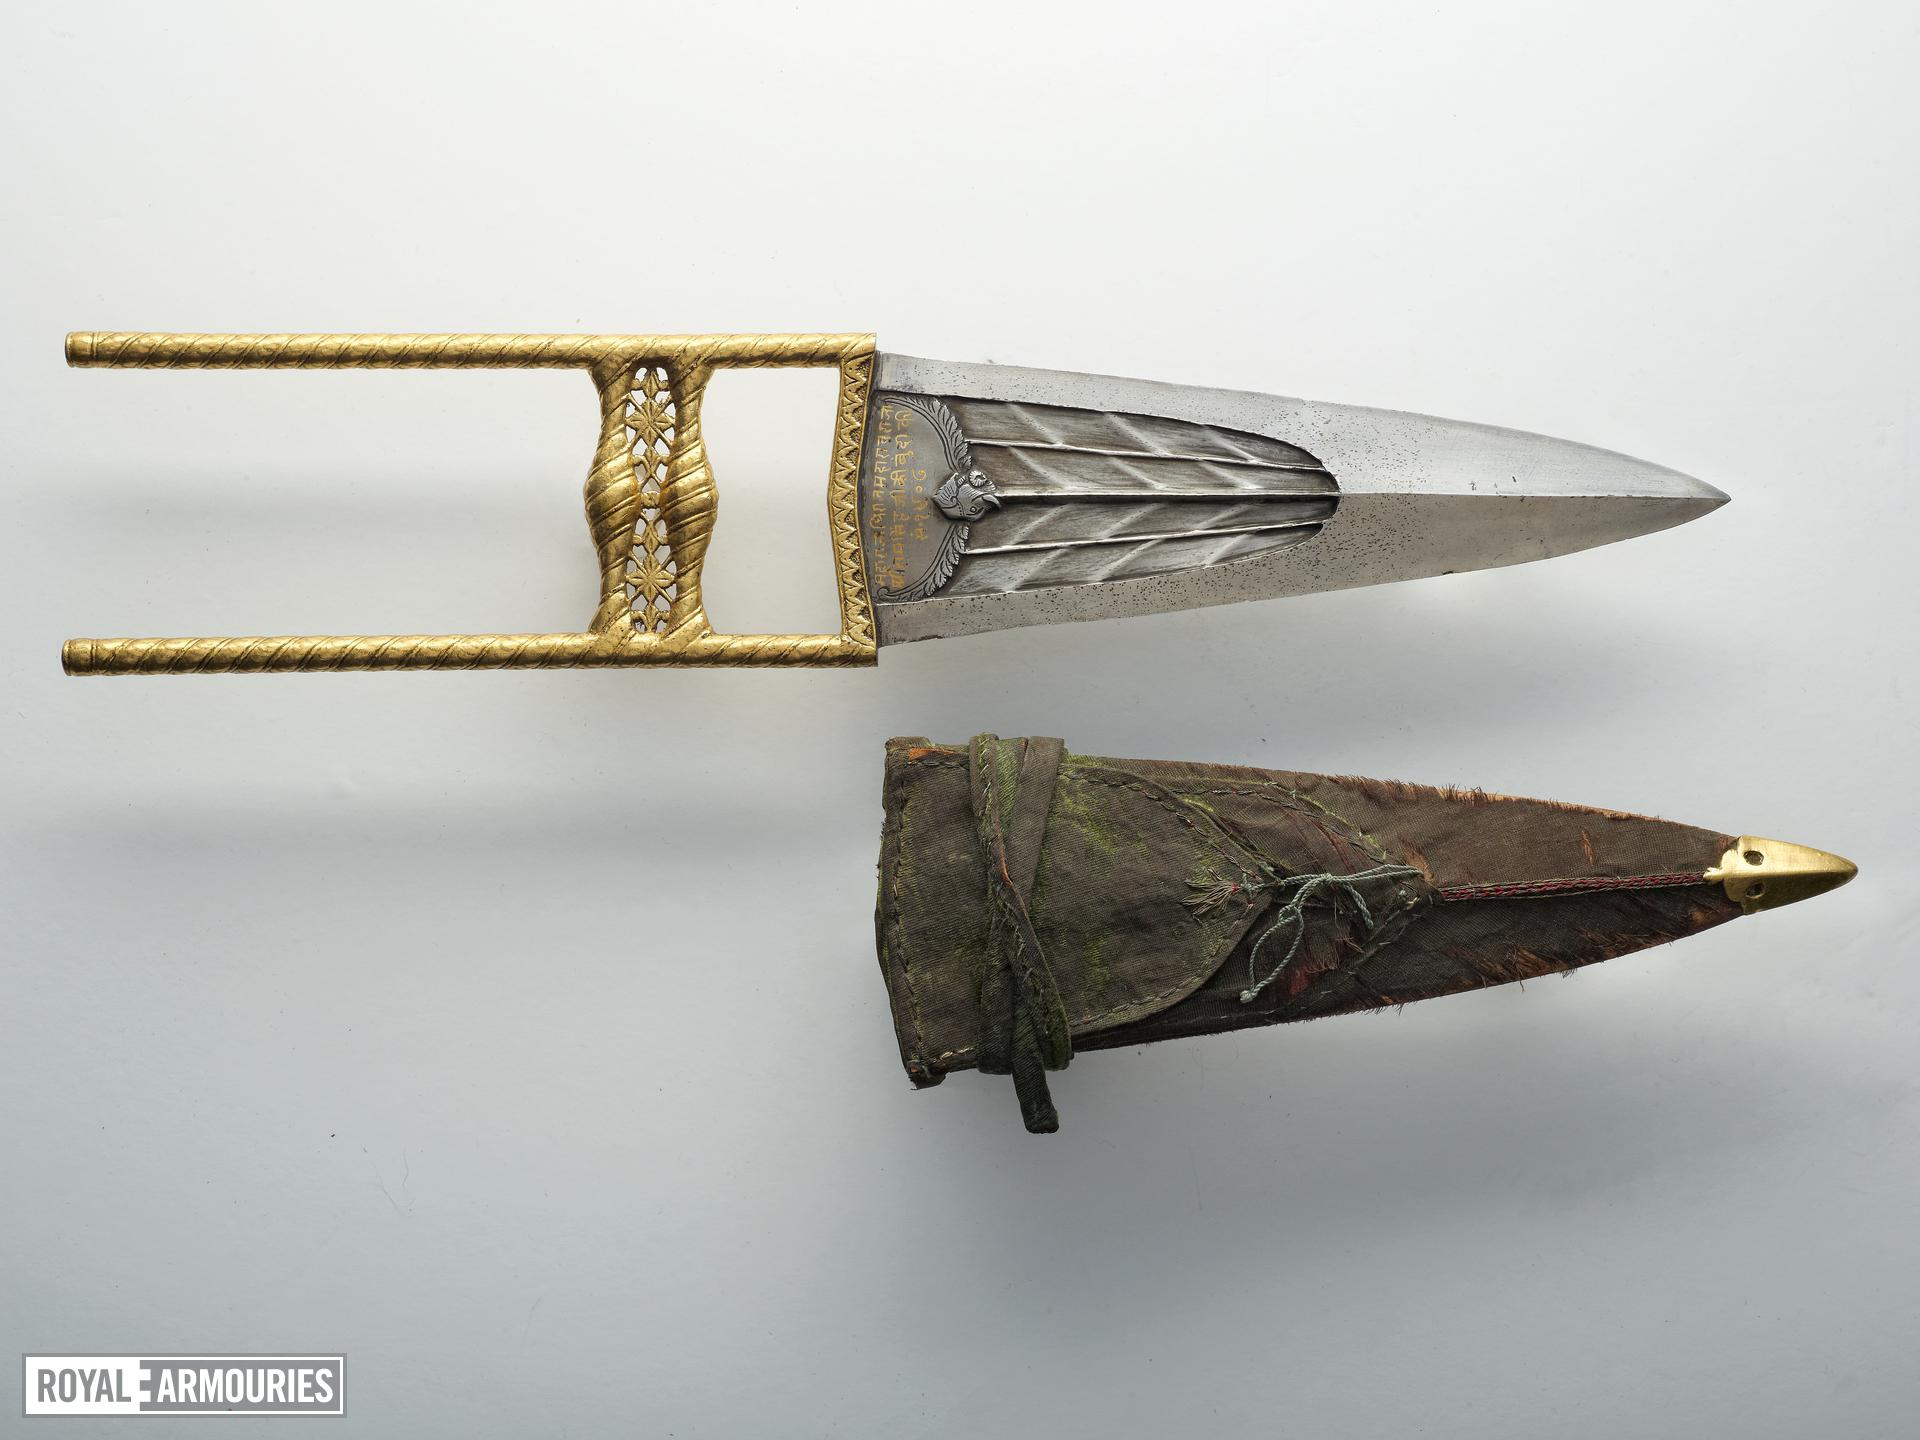 Dagger and scabbard (katar) with inscrption and elephant's head.